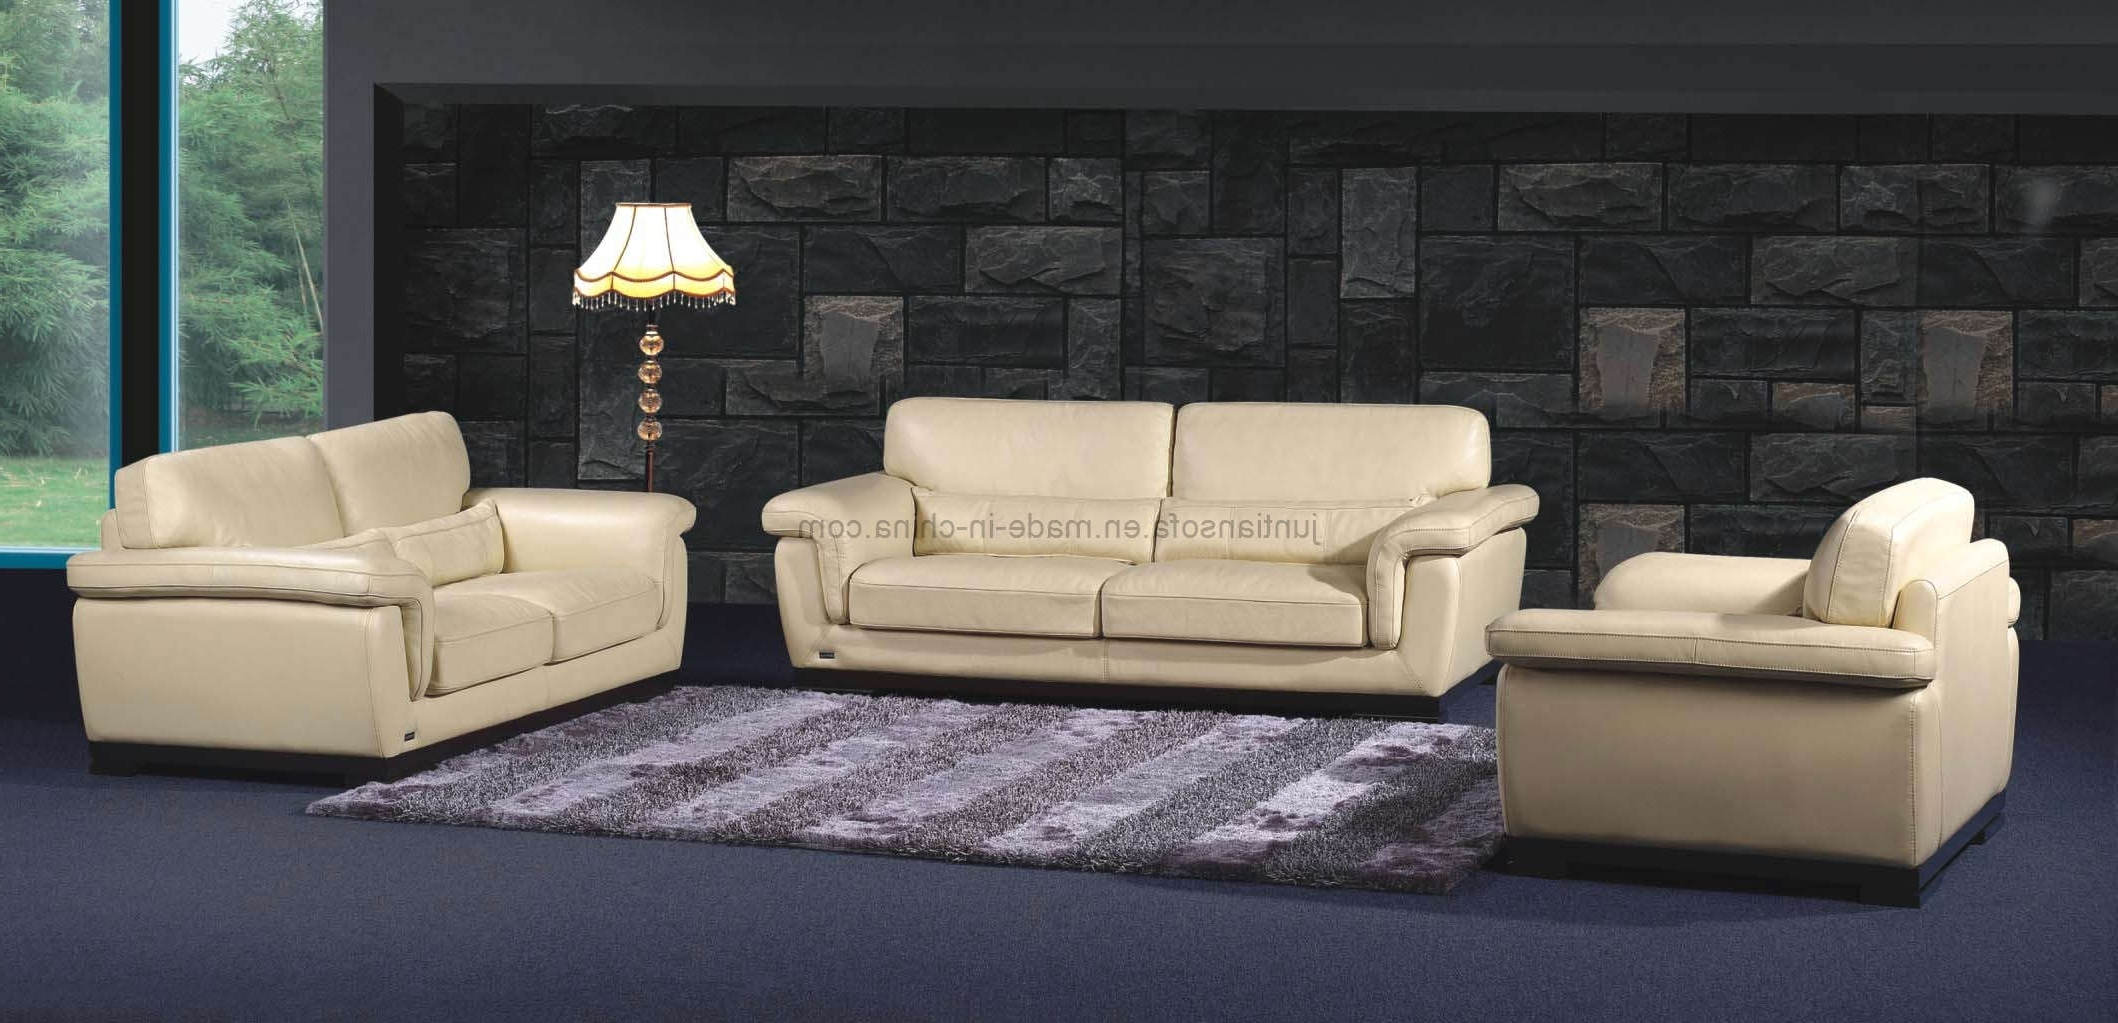 2017 Quality Sectional Sofas Intended For Lovely High Quality Sectional Sofa 30 For Sofa Room Ideas With (View 4 of 15)